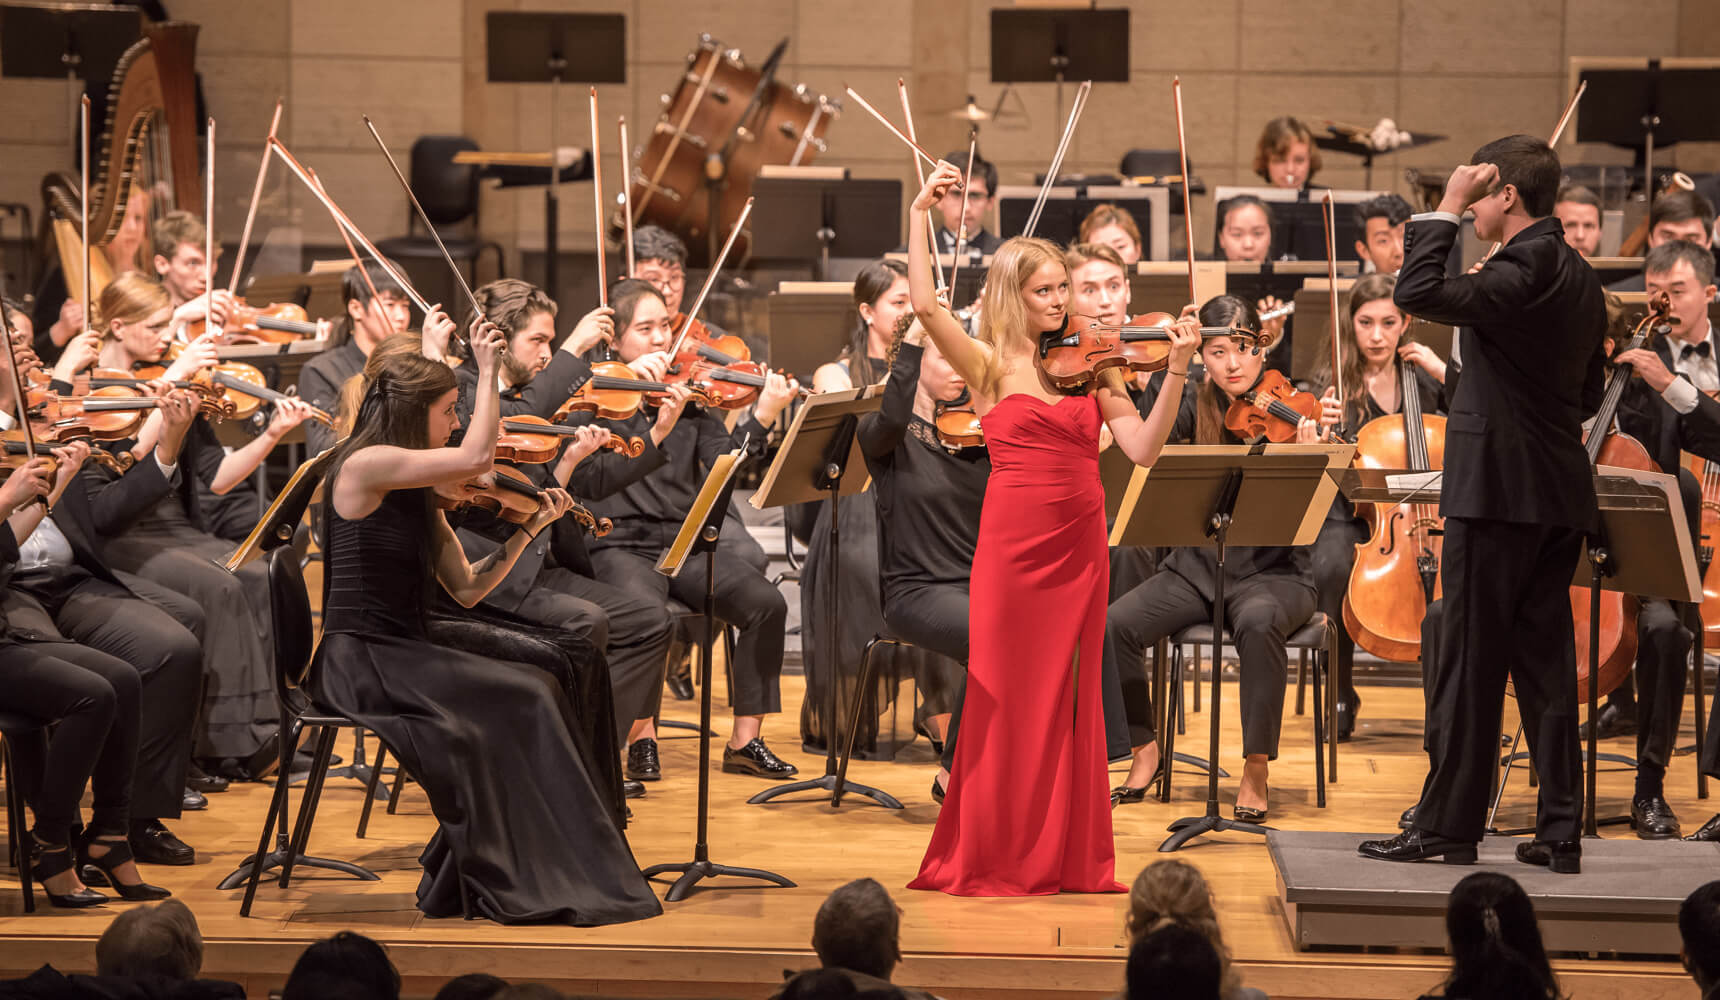 A symphony performs while a violin soloist plays in the center wearing a red dress